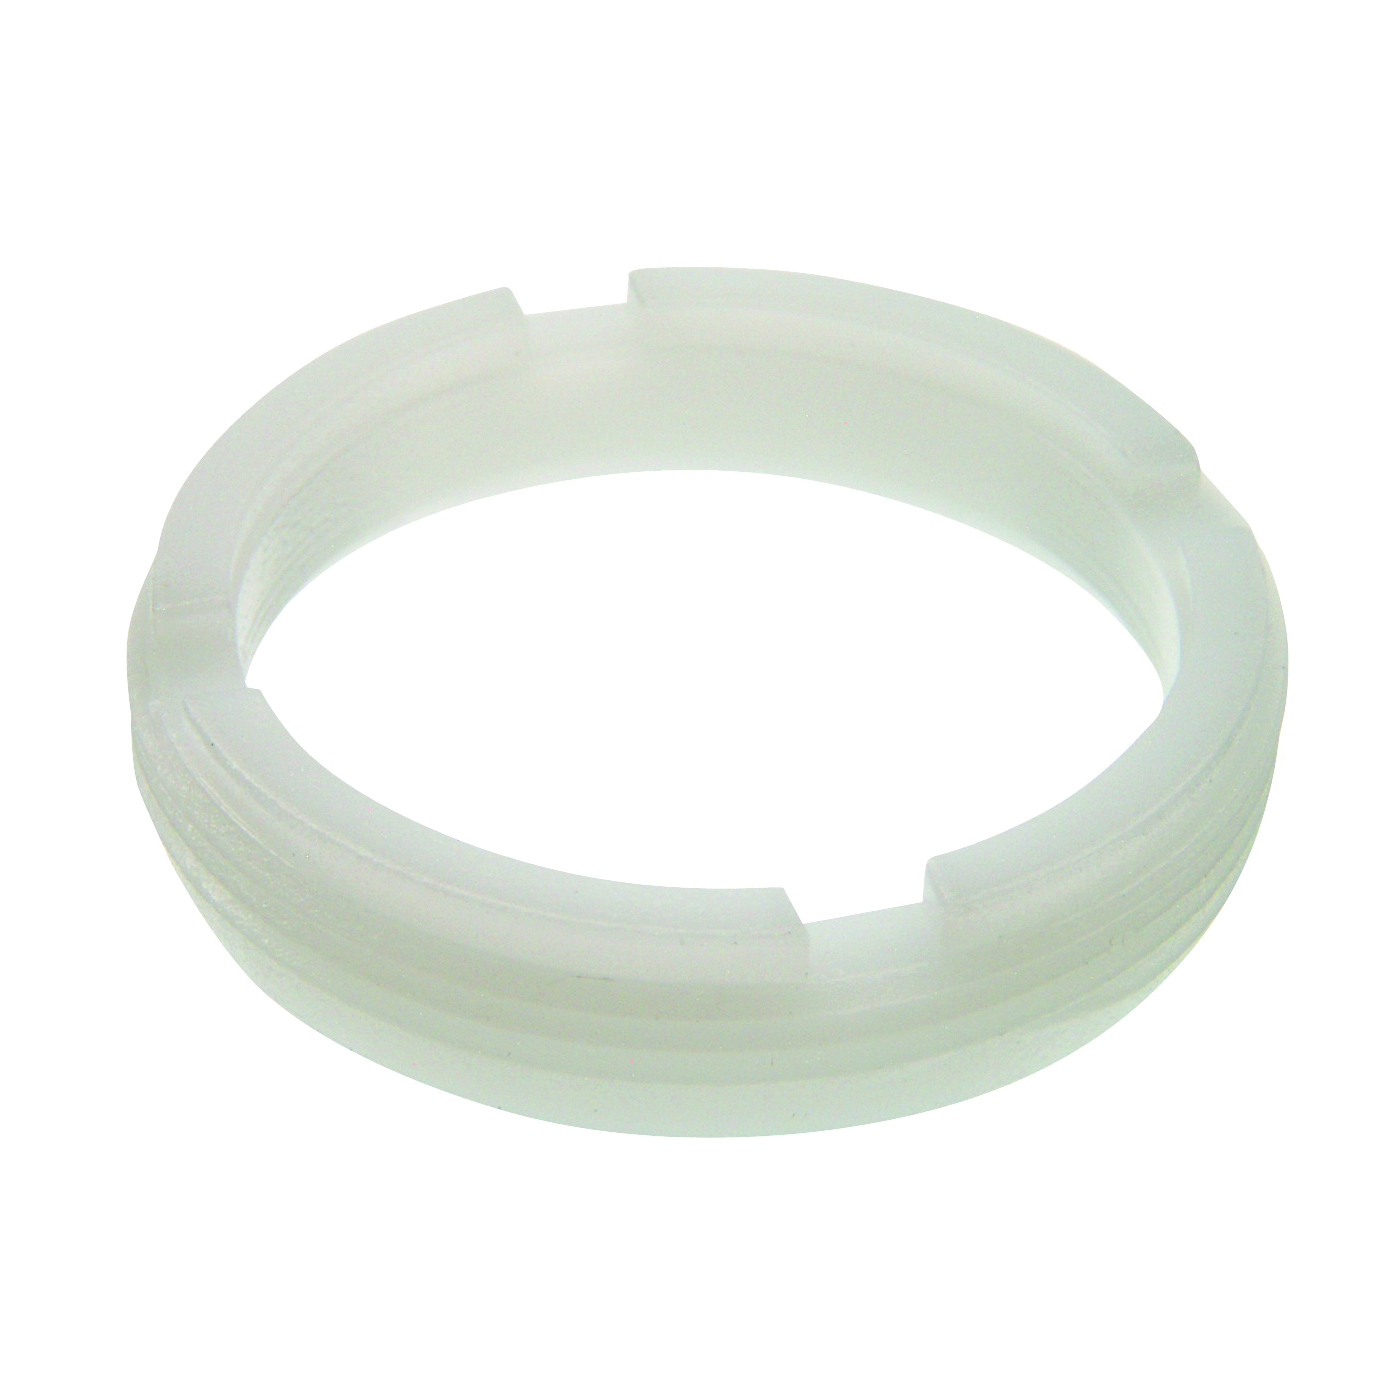 Picture of Danco 80965 Faucet Adjusting Ring, Plastic, For: Delta Kitchen, Lavatory, Tub/Shower Faucets